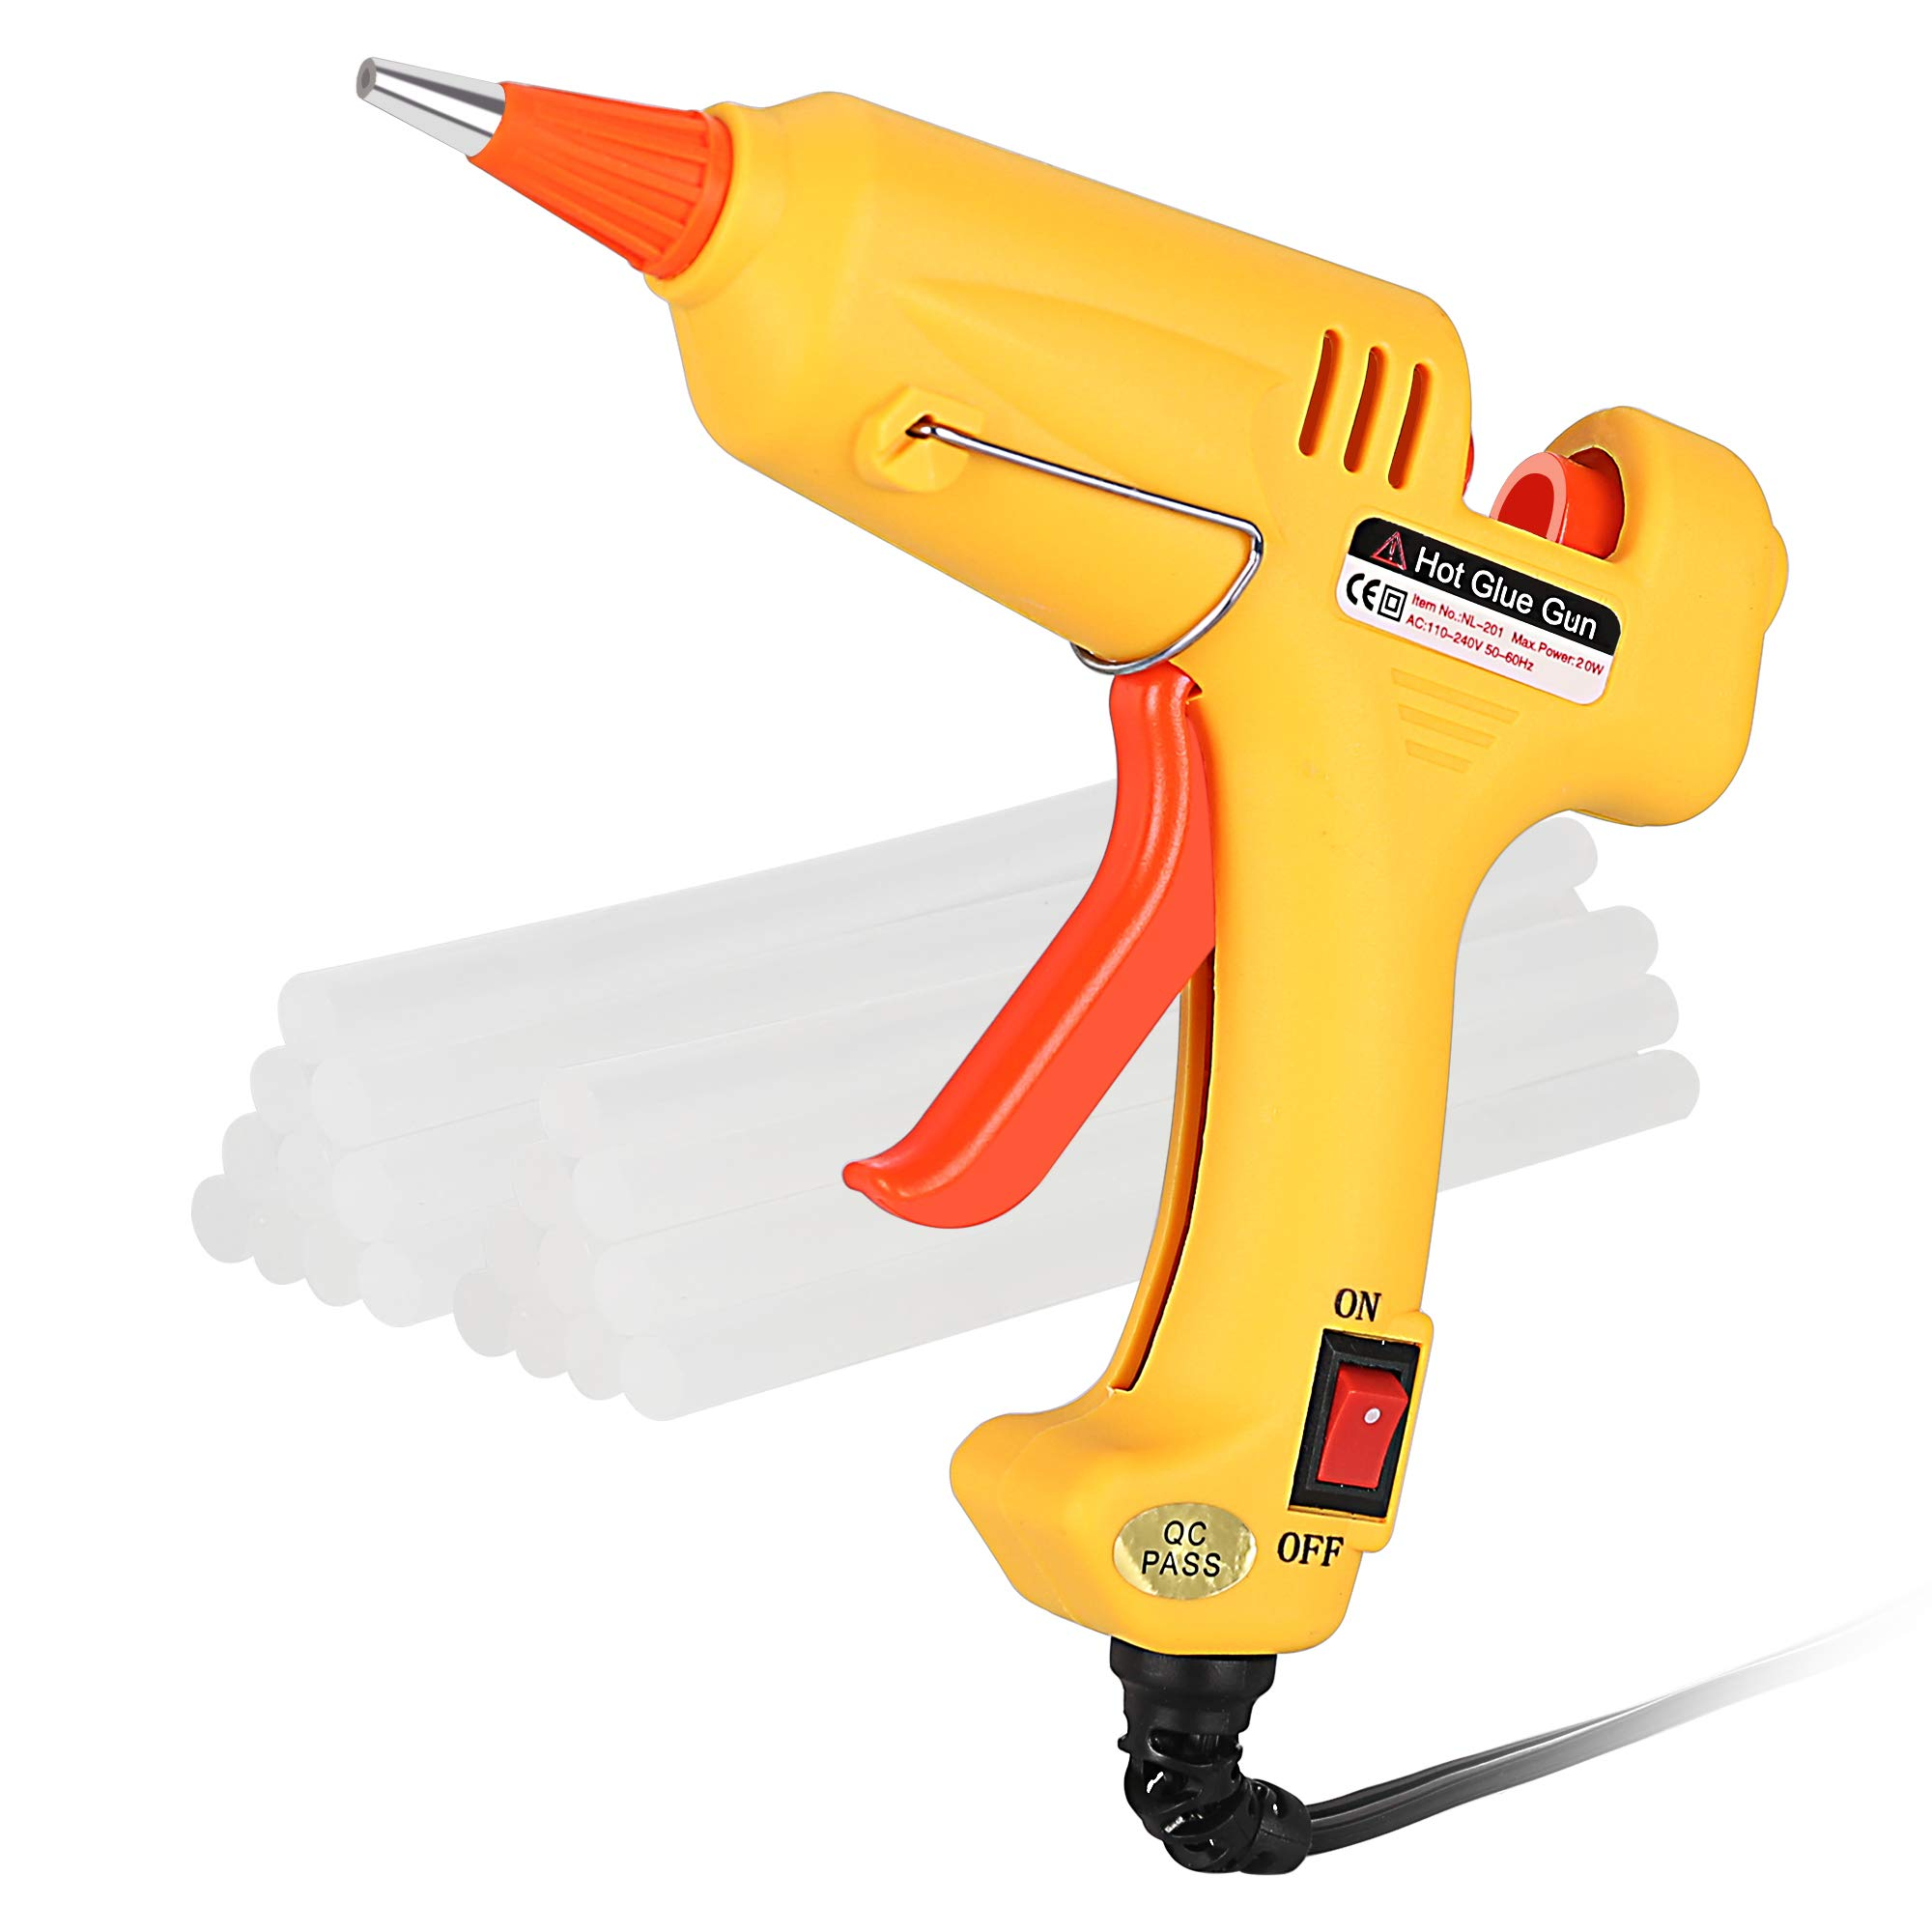 Portable High Temperature Melting Glue Gun Kit 20 Watts with 20pcs Glue Sticks for DIY Small Arts Crafts Projects and Christmas Decorations